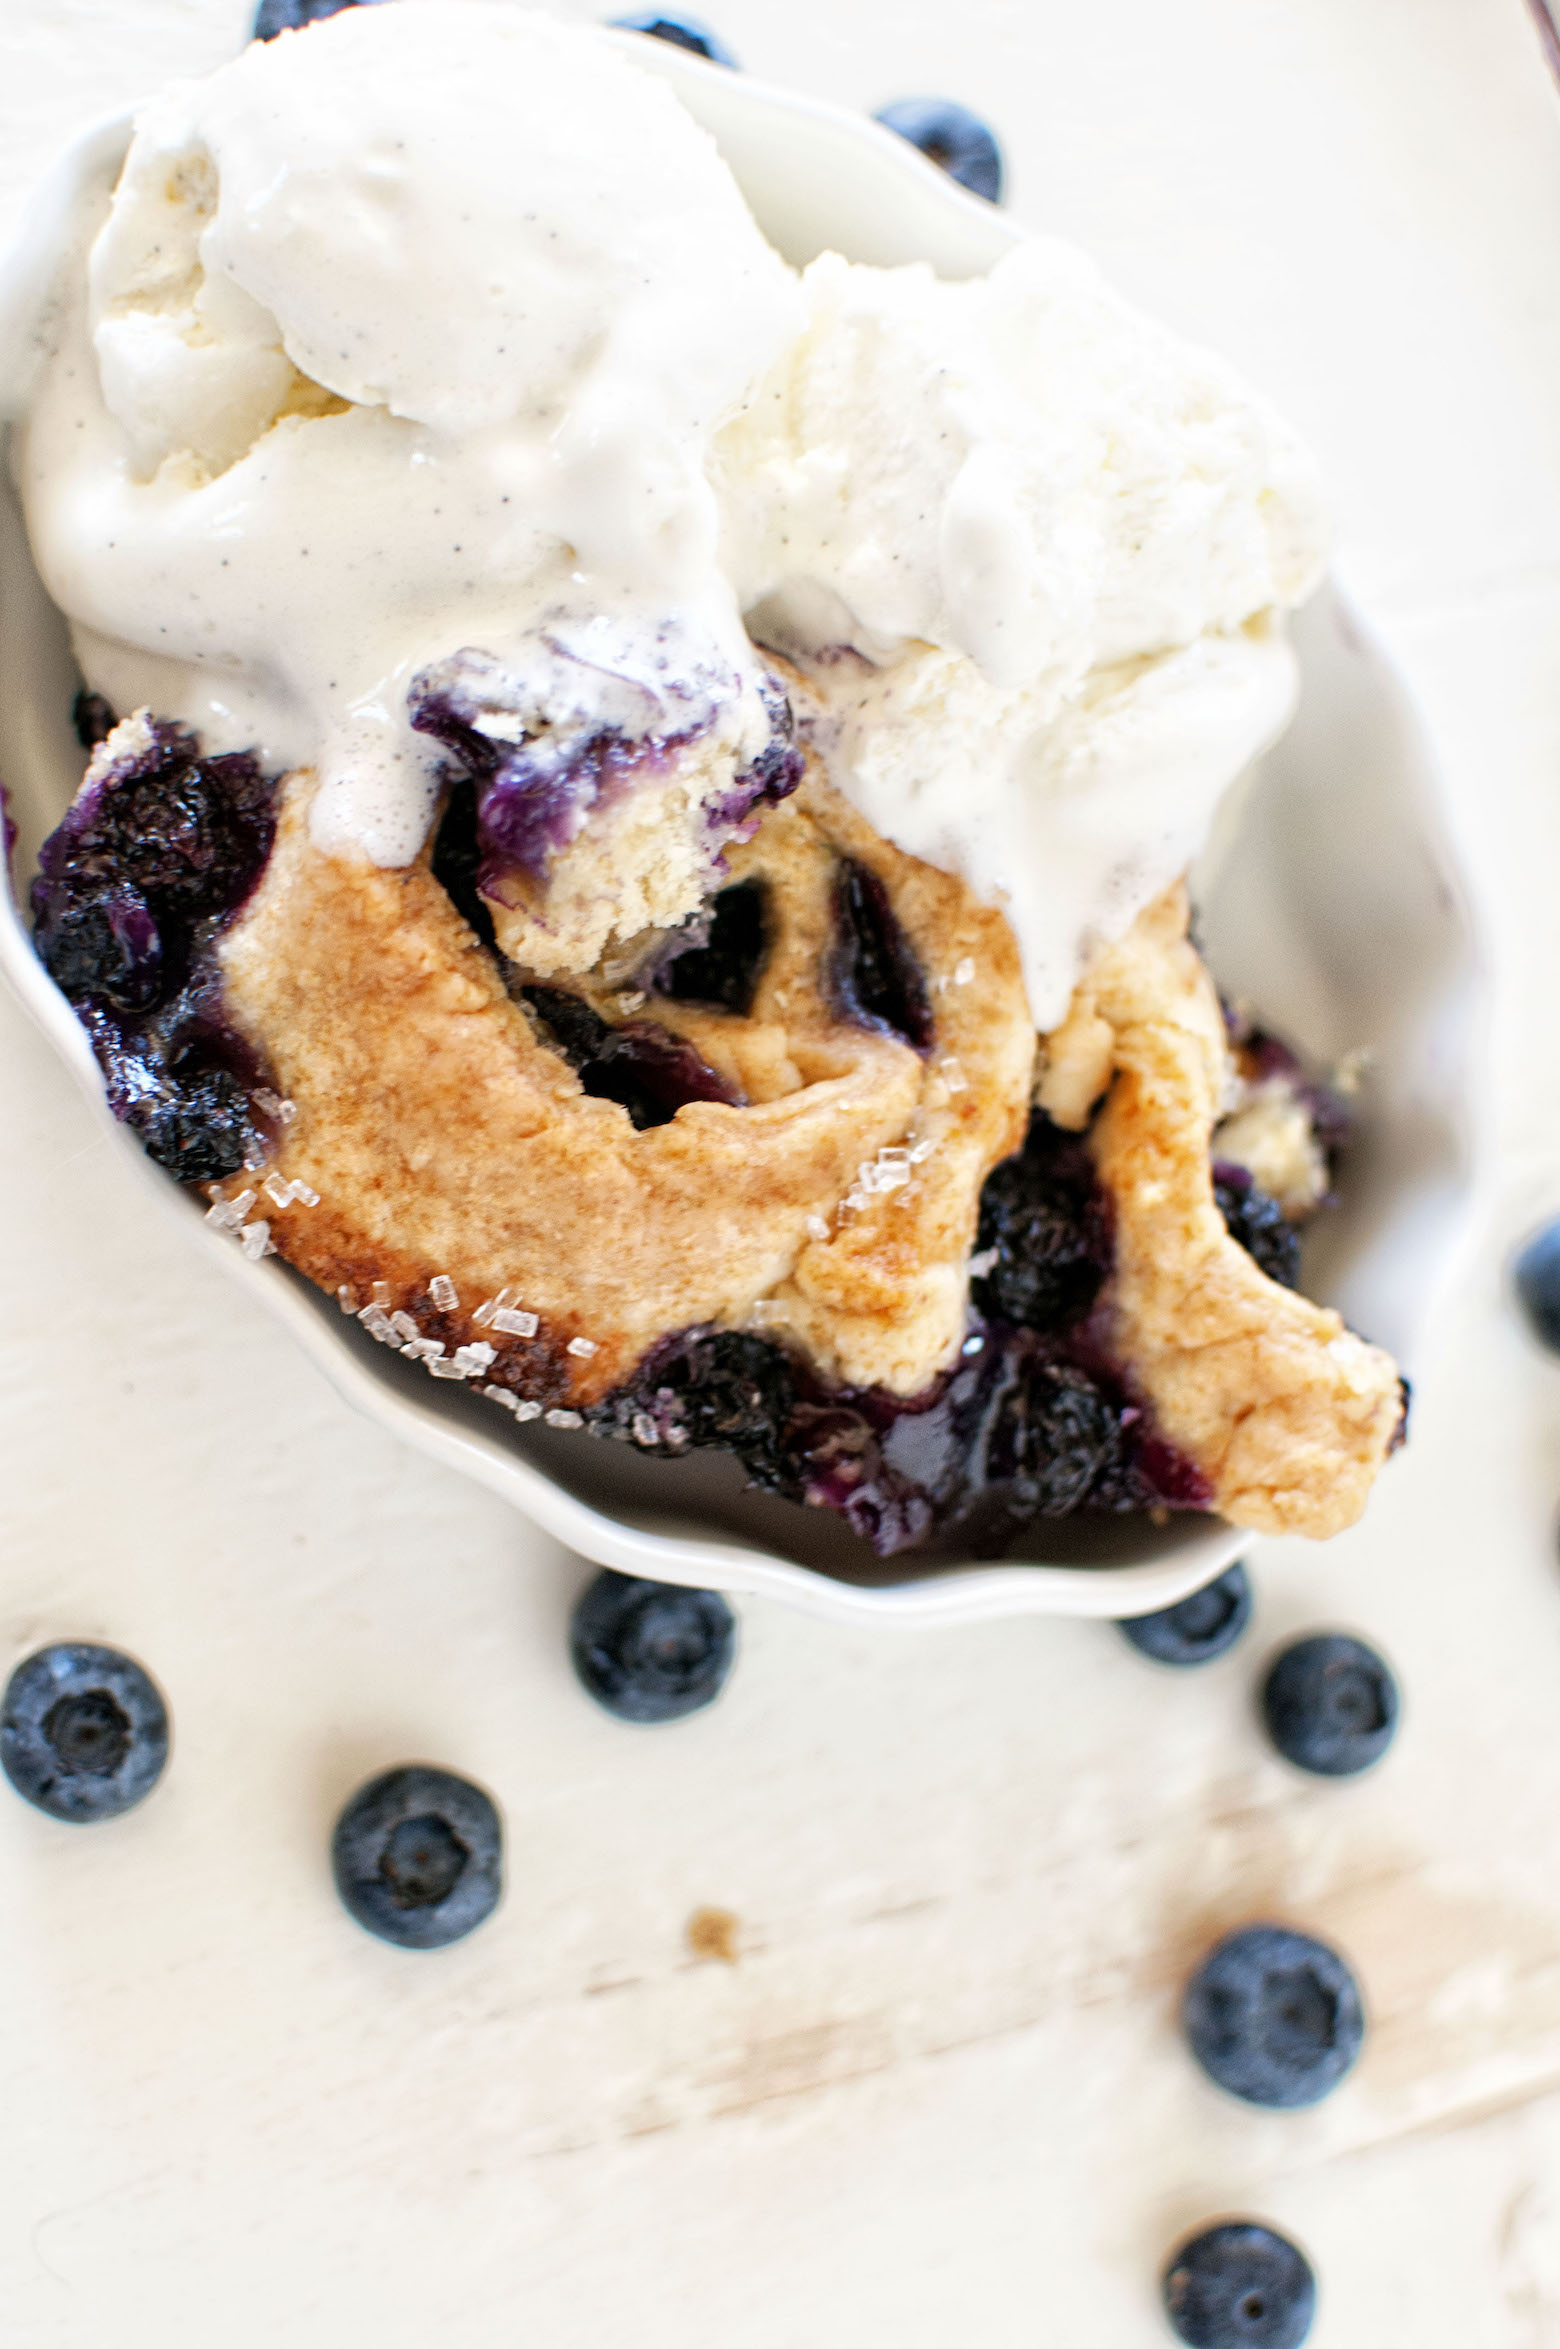 Individual portion of Blueberry Limoncello Cobbler